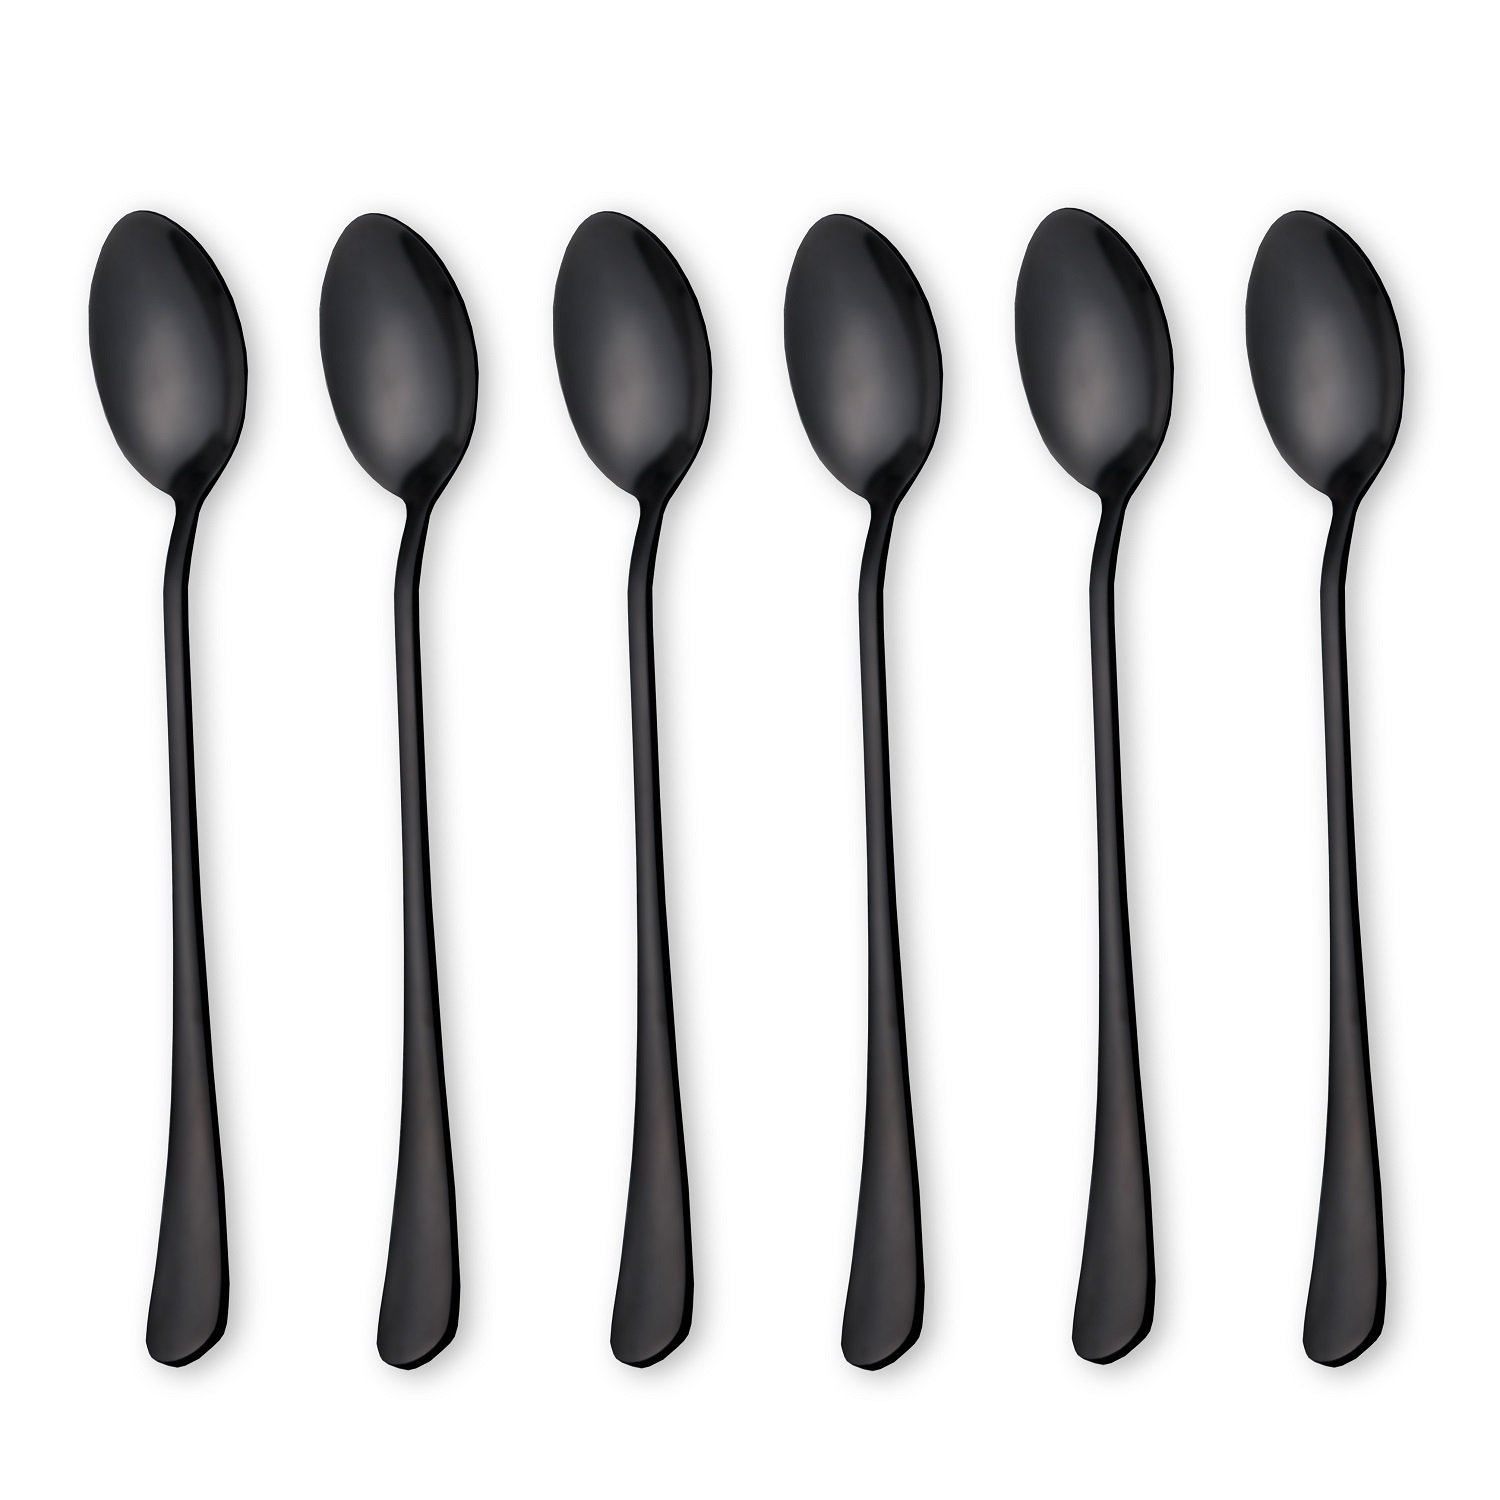 6-Pieces Stainless Steel Long Handle Ice Tea Coffee Mixing Spoons, Icecream Spoon, Espresso Deluxe Spoon, Bar spoon, 7.62-inch(Black) by HOMQUEN